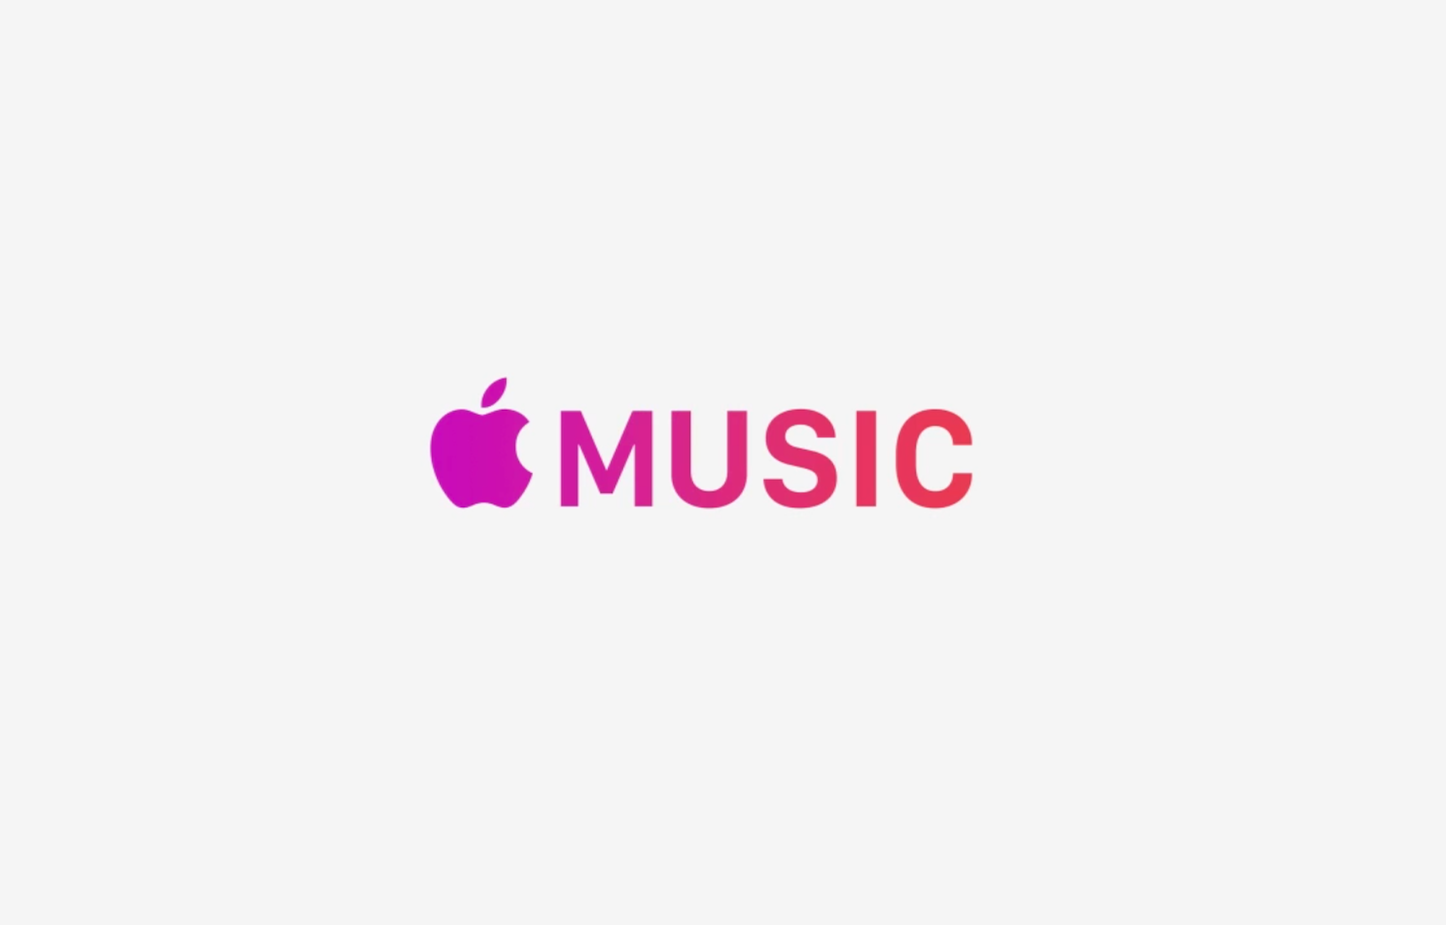 apple-music-logo-prvideo